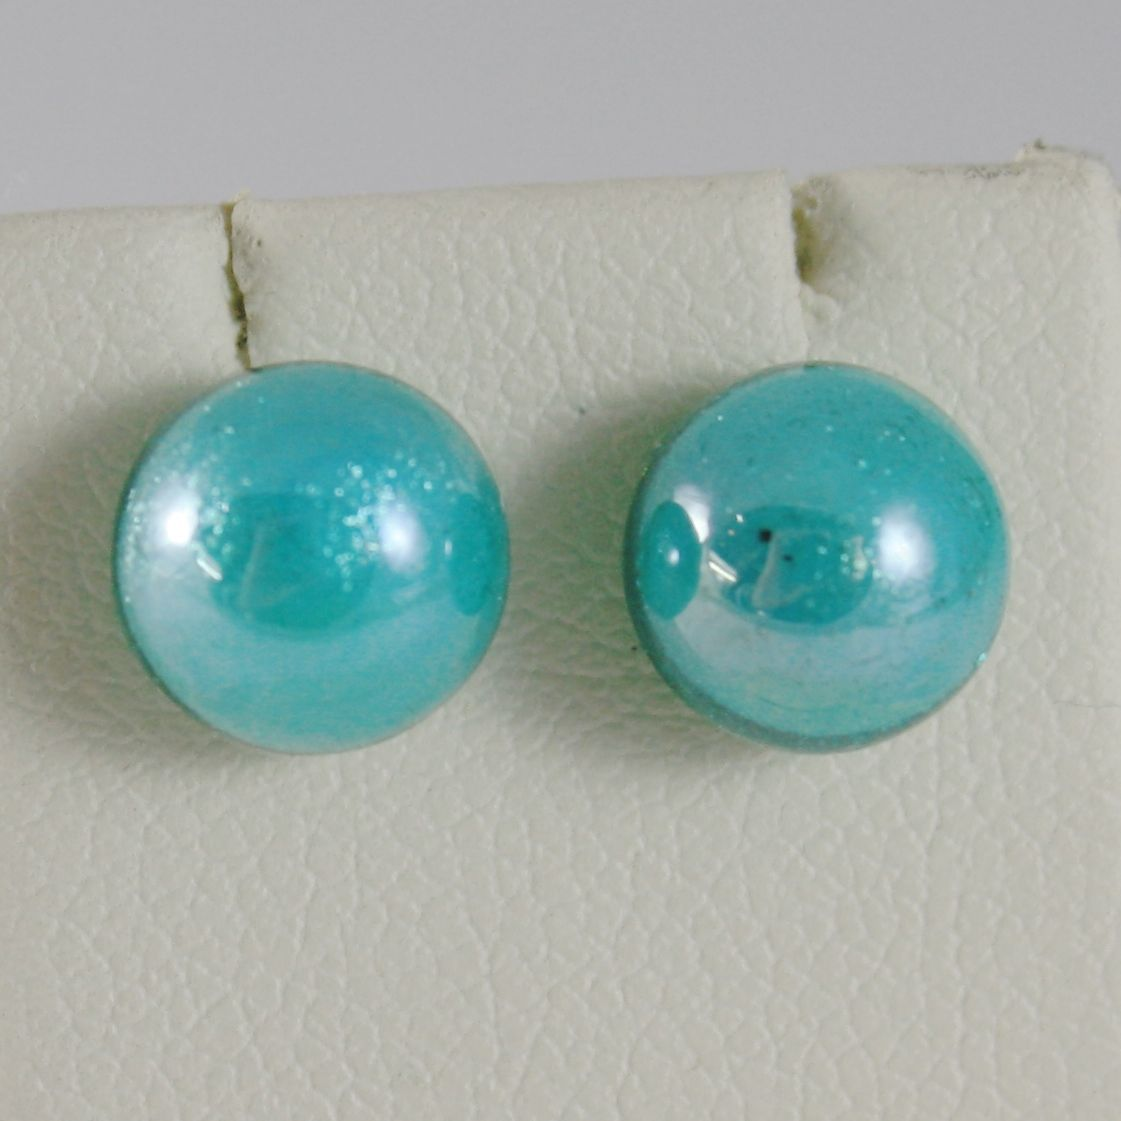 ANTICA MURRINA VENEZIA TURQUOISE HALF BALL 8 MM WITH BUTTERFLY EARRINGS